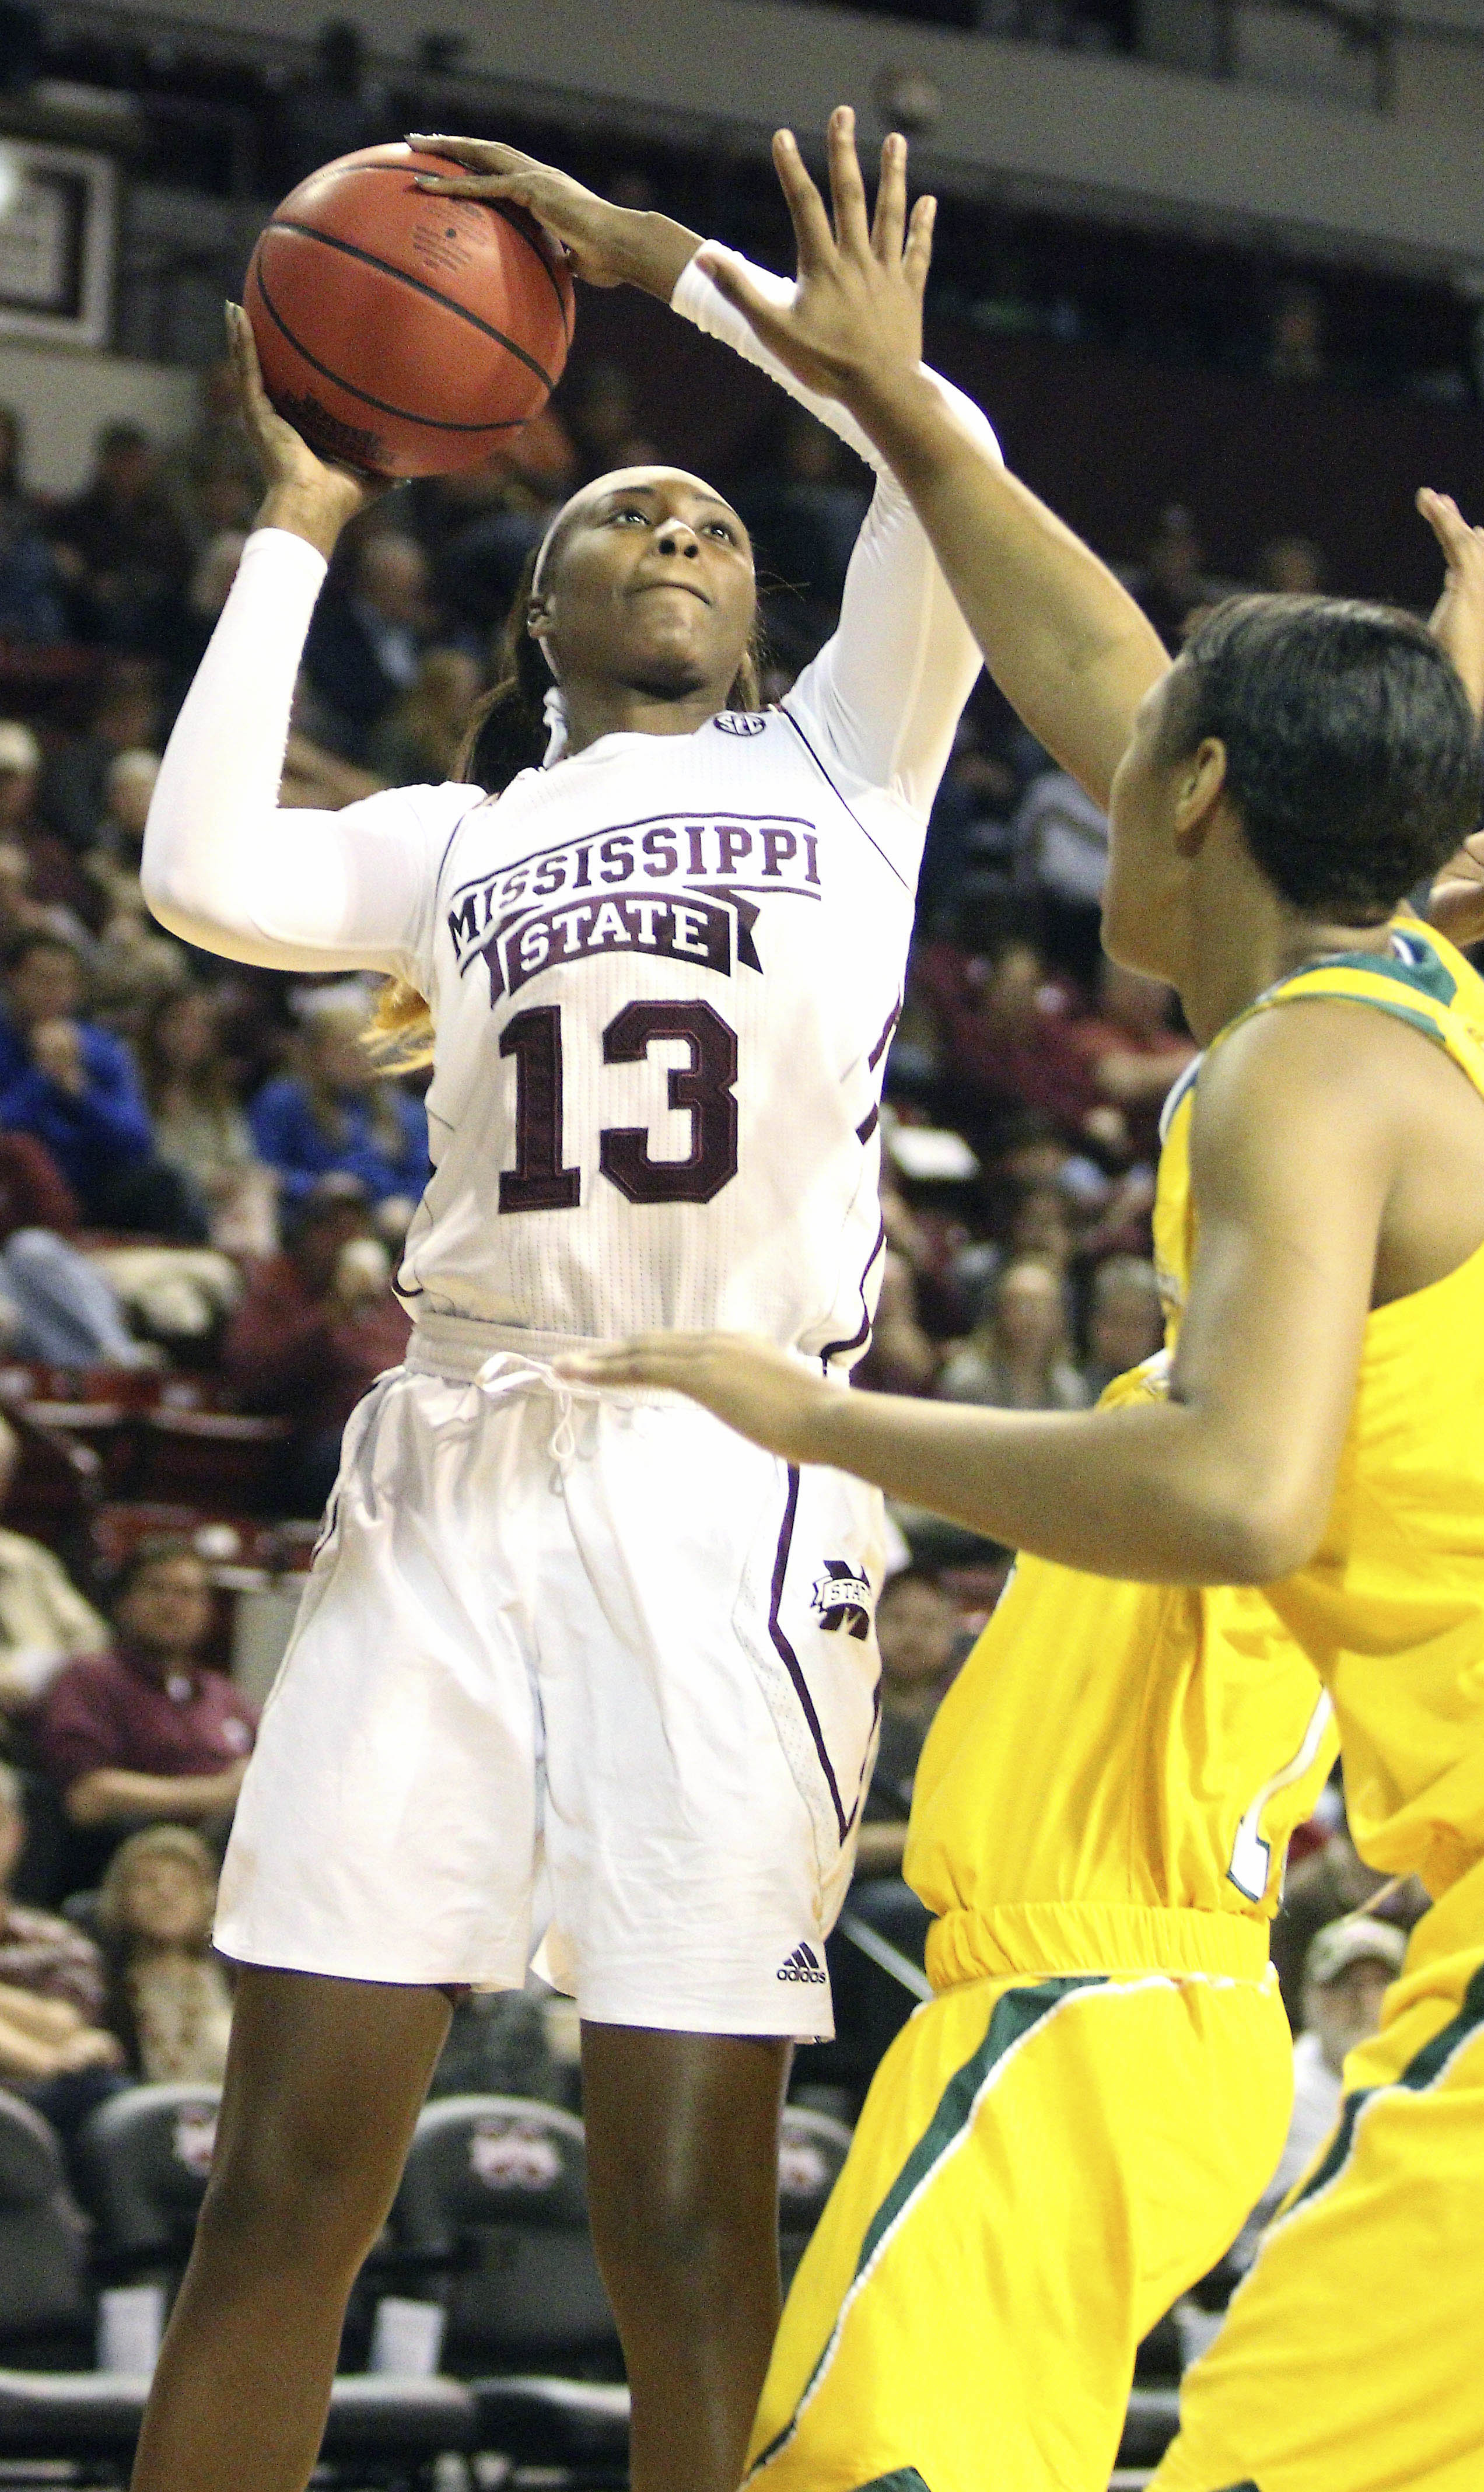 Mississippi State forward Ketara Chapel (13) shoots over Southeastern Louisiana forward Nanna Pool (42) during the first half of an NCAA college basketball game in Starkville, Miss., Monday, Dec. 28, 2015. (AP Photo/Jim Lytle)